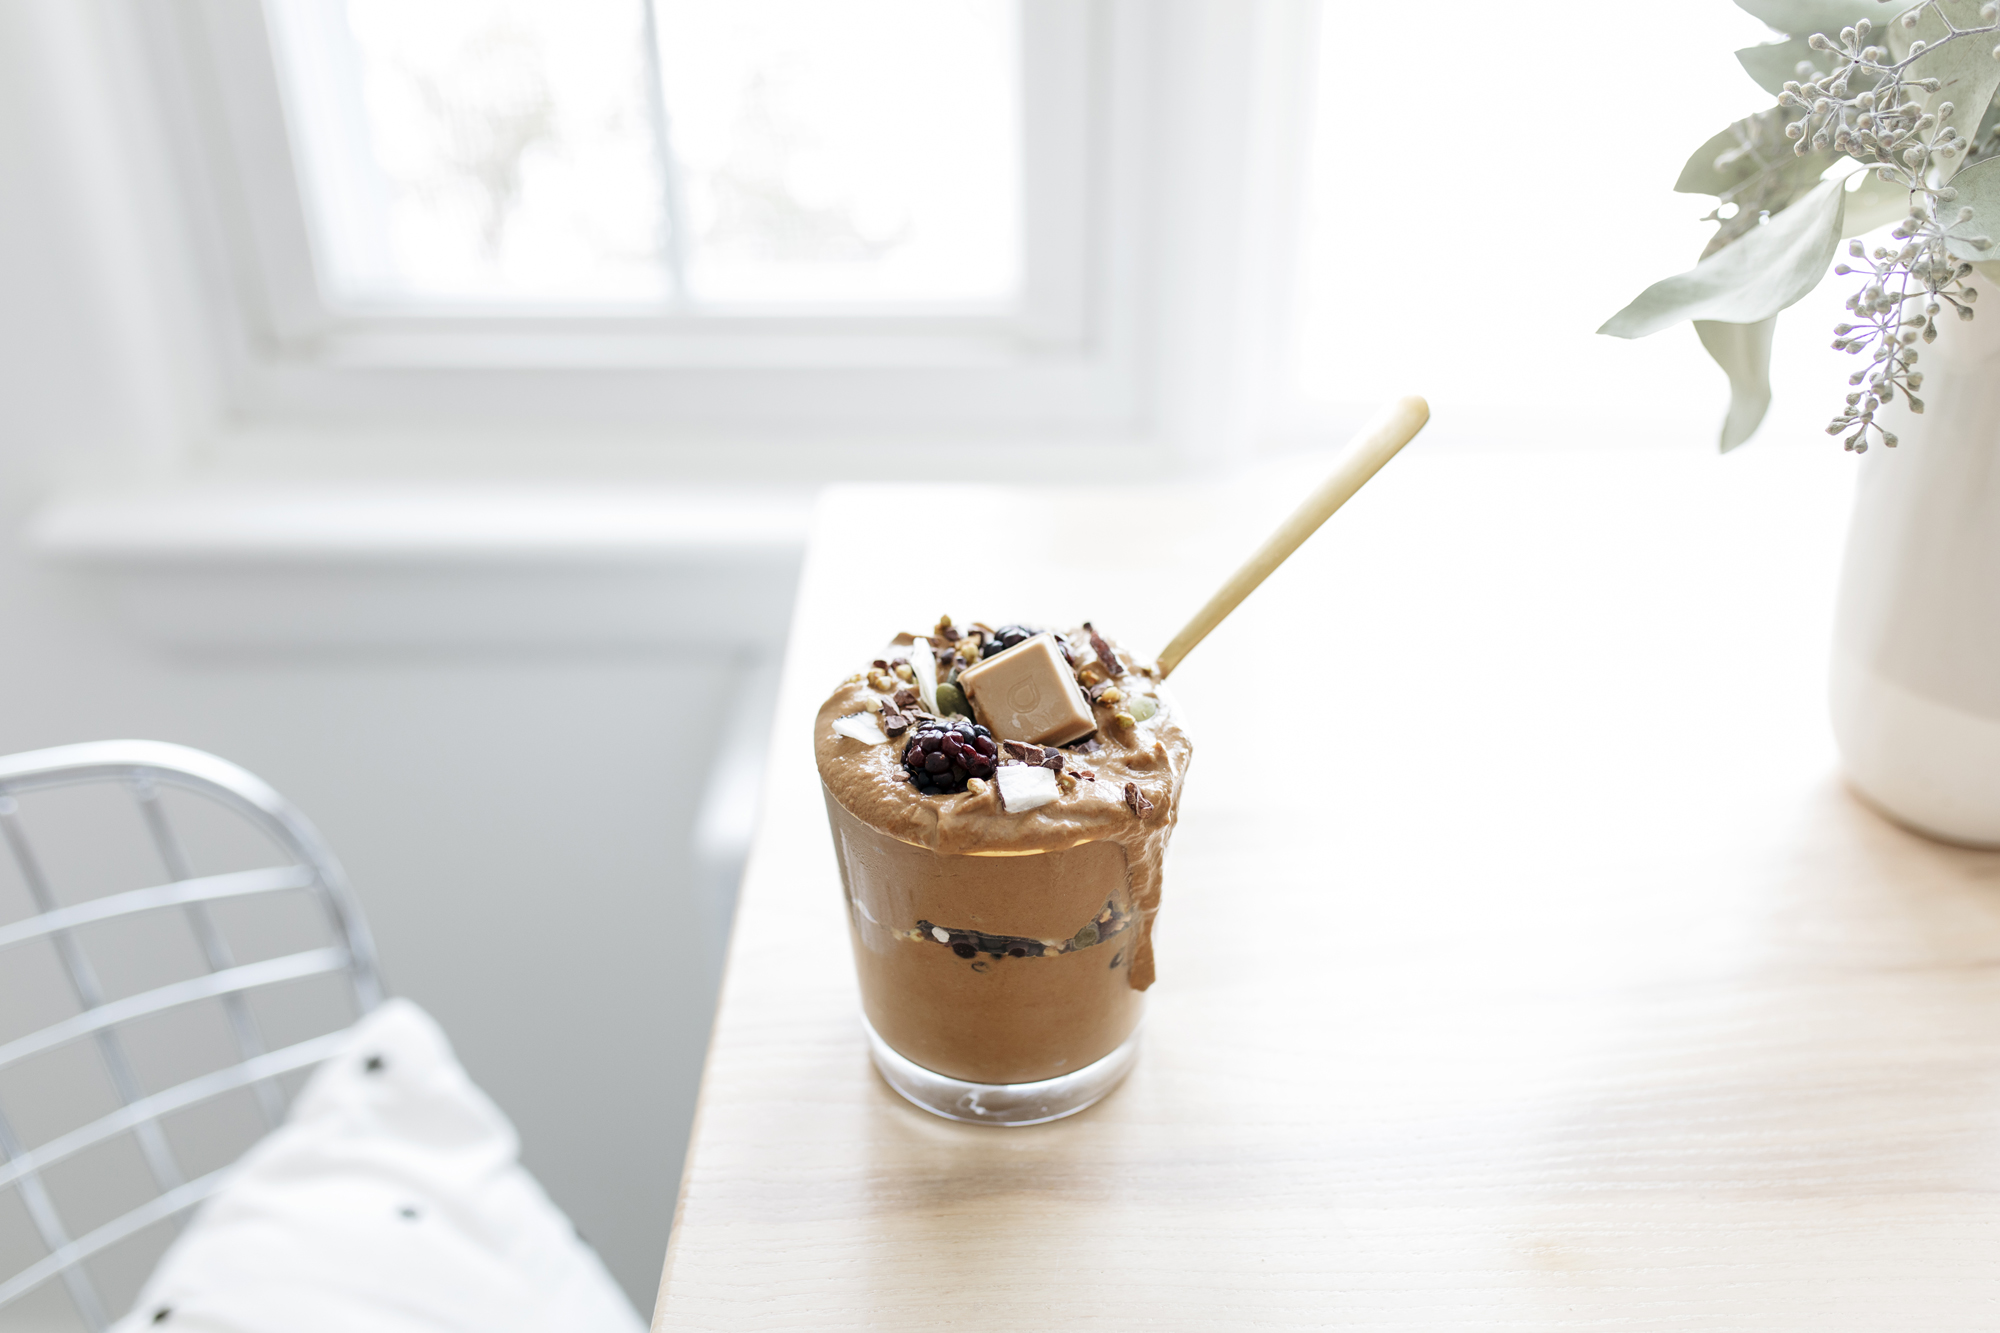 Creamy Cacao Nice Cream + Monday Motivation. Starting Monday's with a good breakfast is a great way to start out the entire week. Check out the recipe below